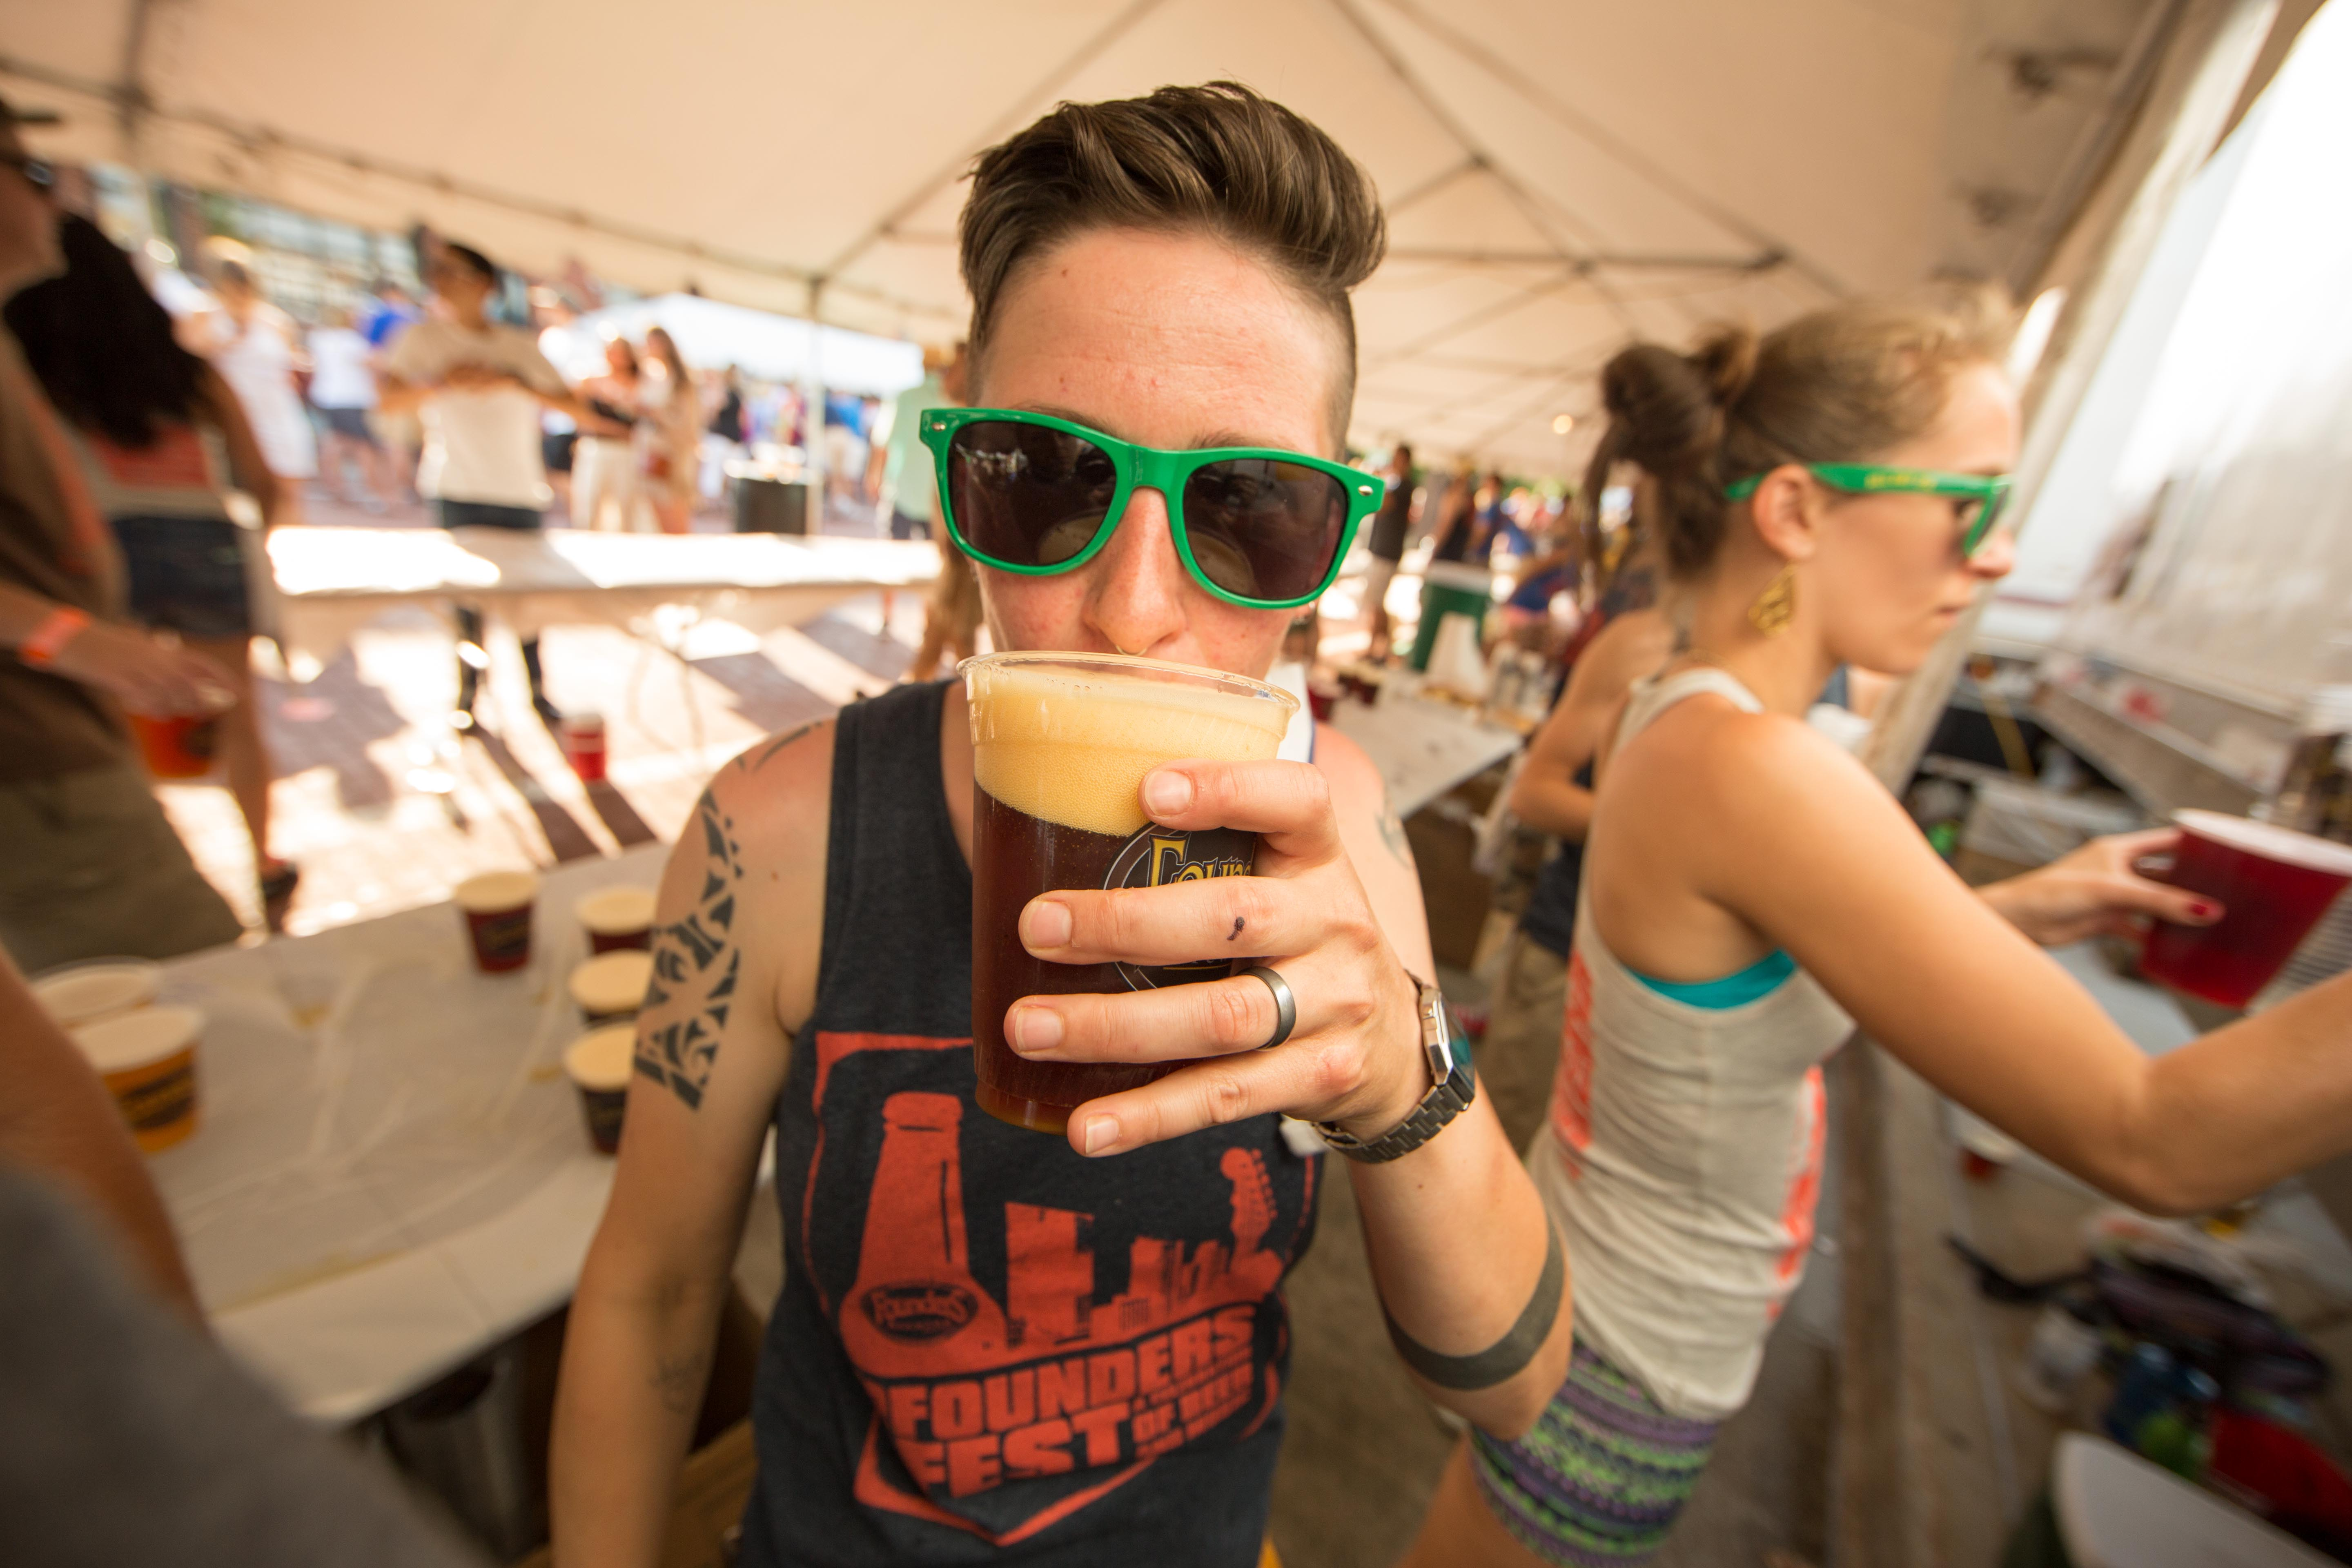 Person drinking Founders beer at Founder's Fest